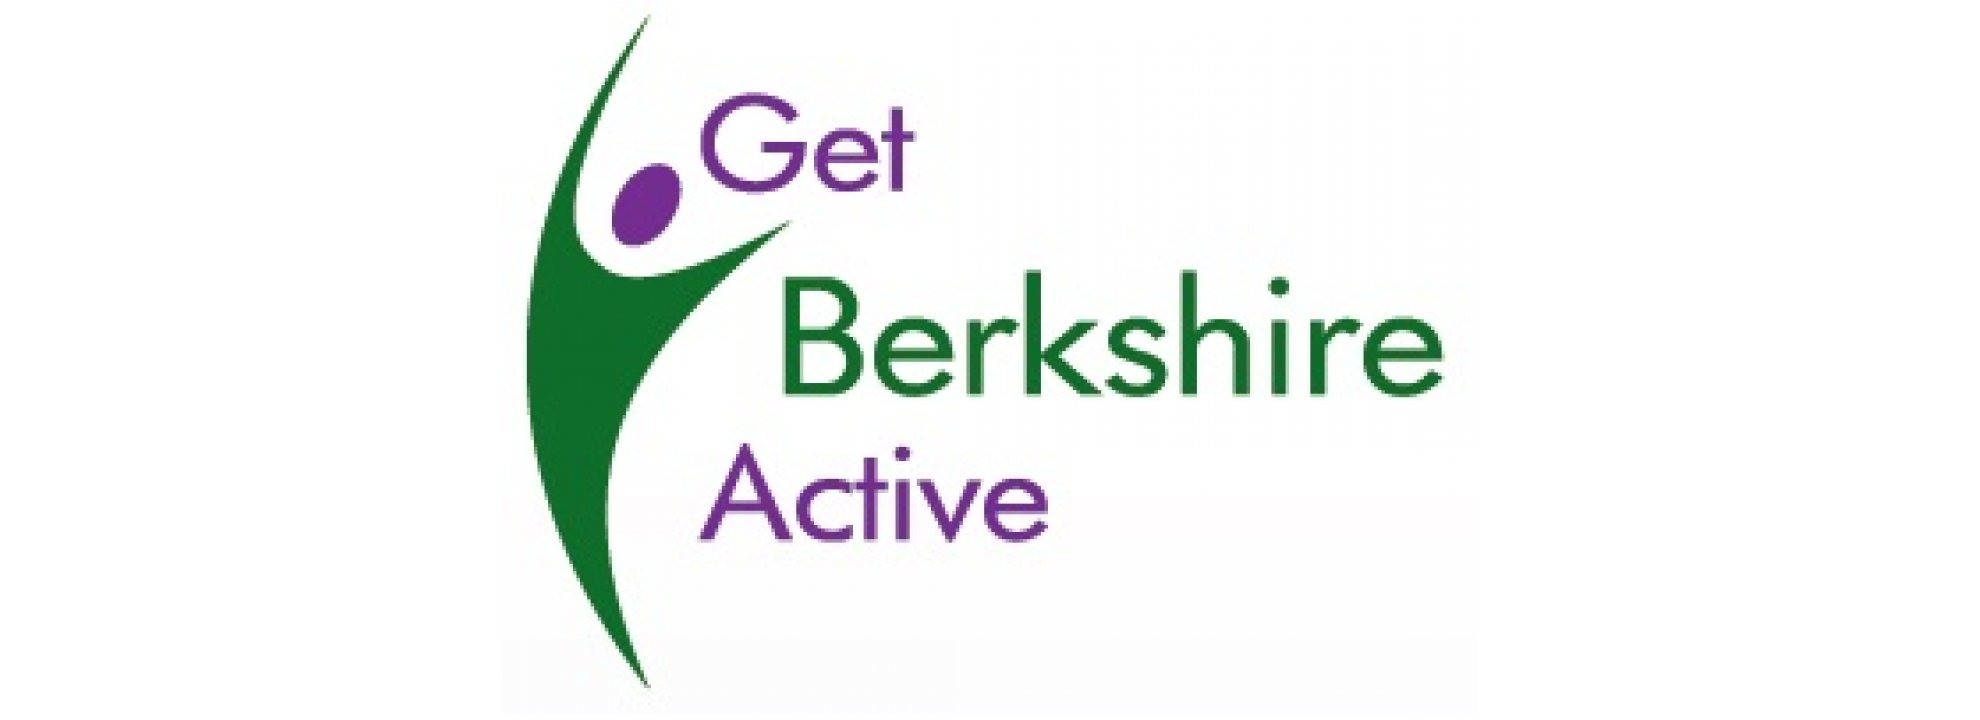 GBA Tackling Inequalities through Physical Activity & Sport - Strategic Launch & Partner Engagement Event Banner